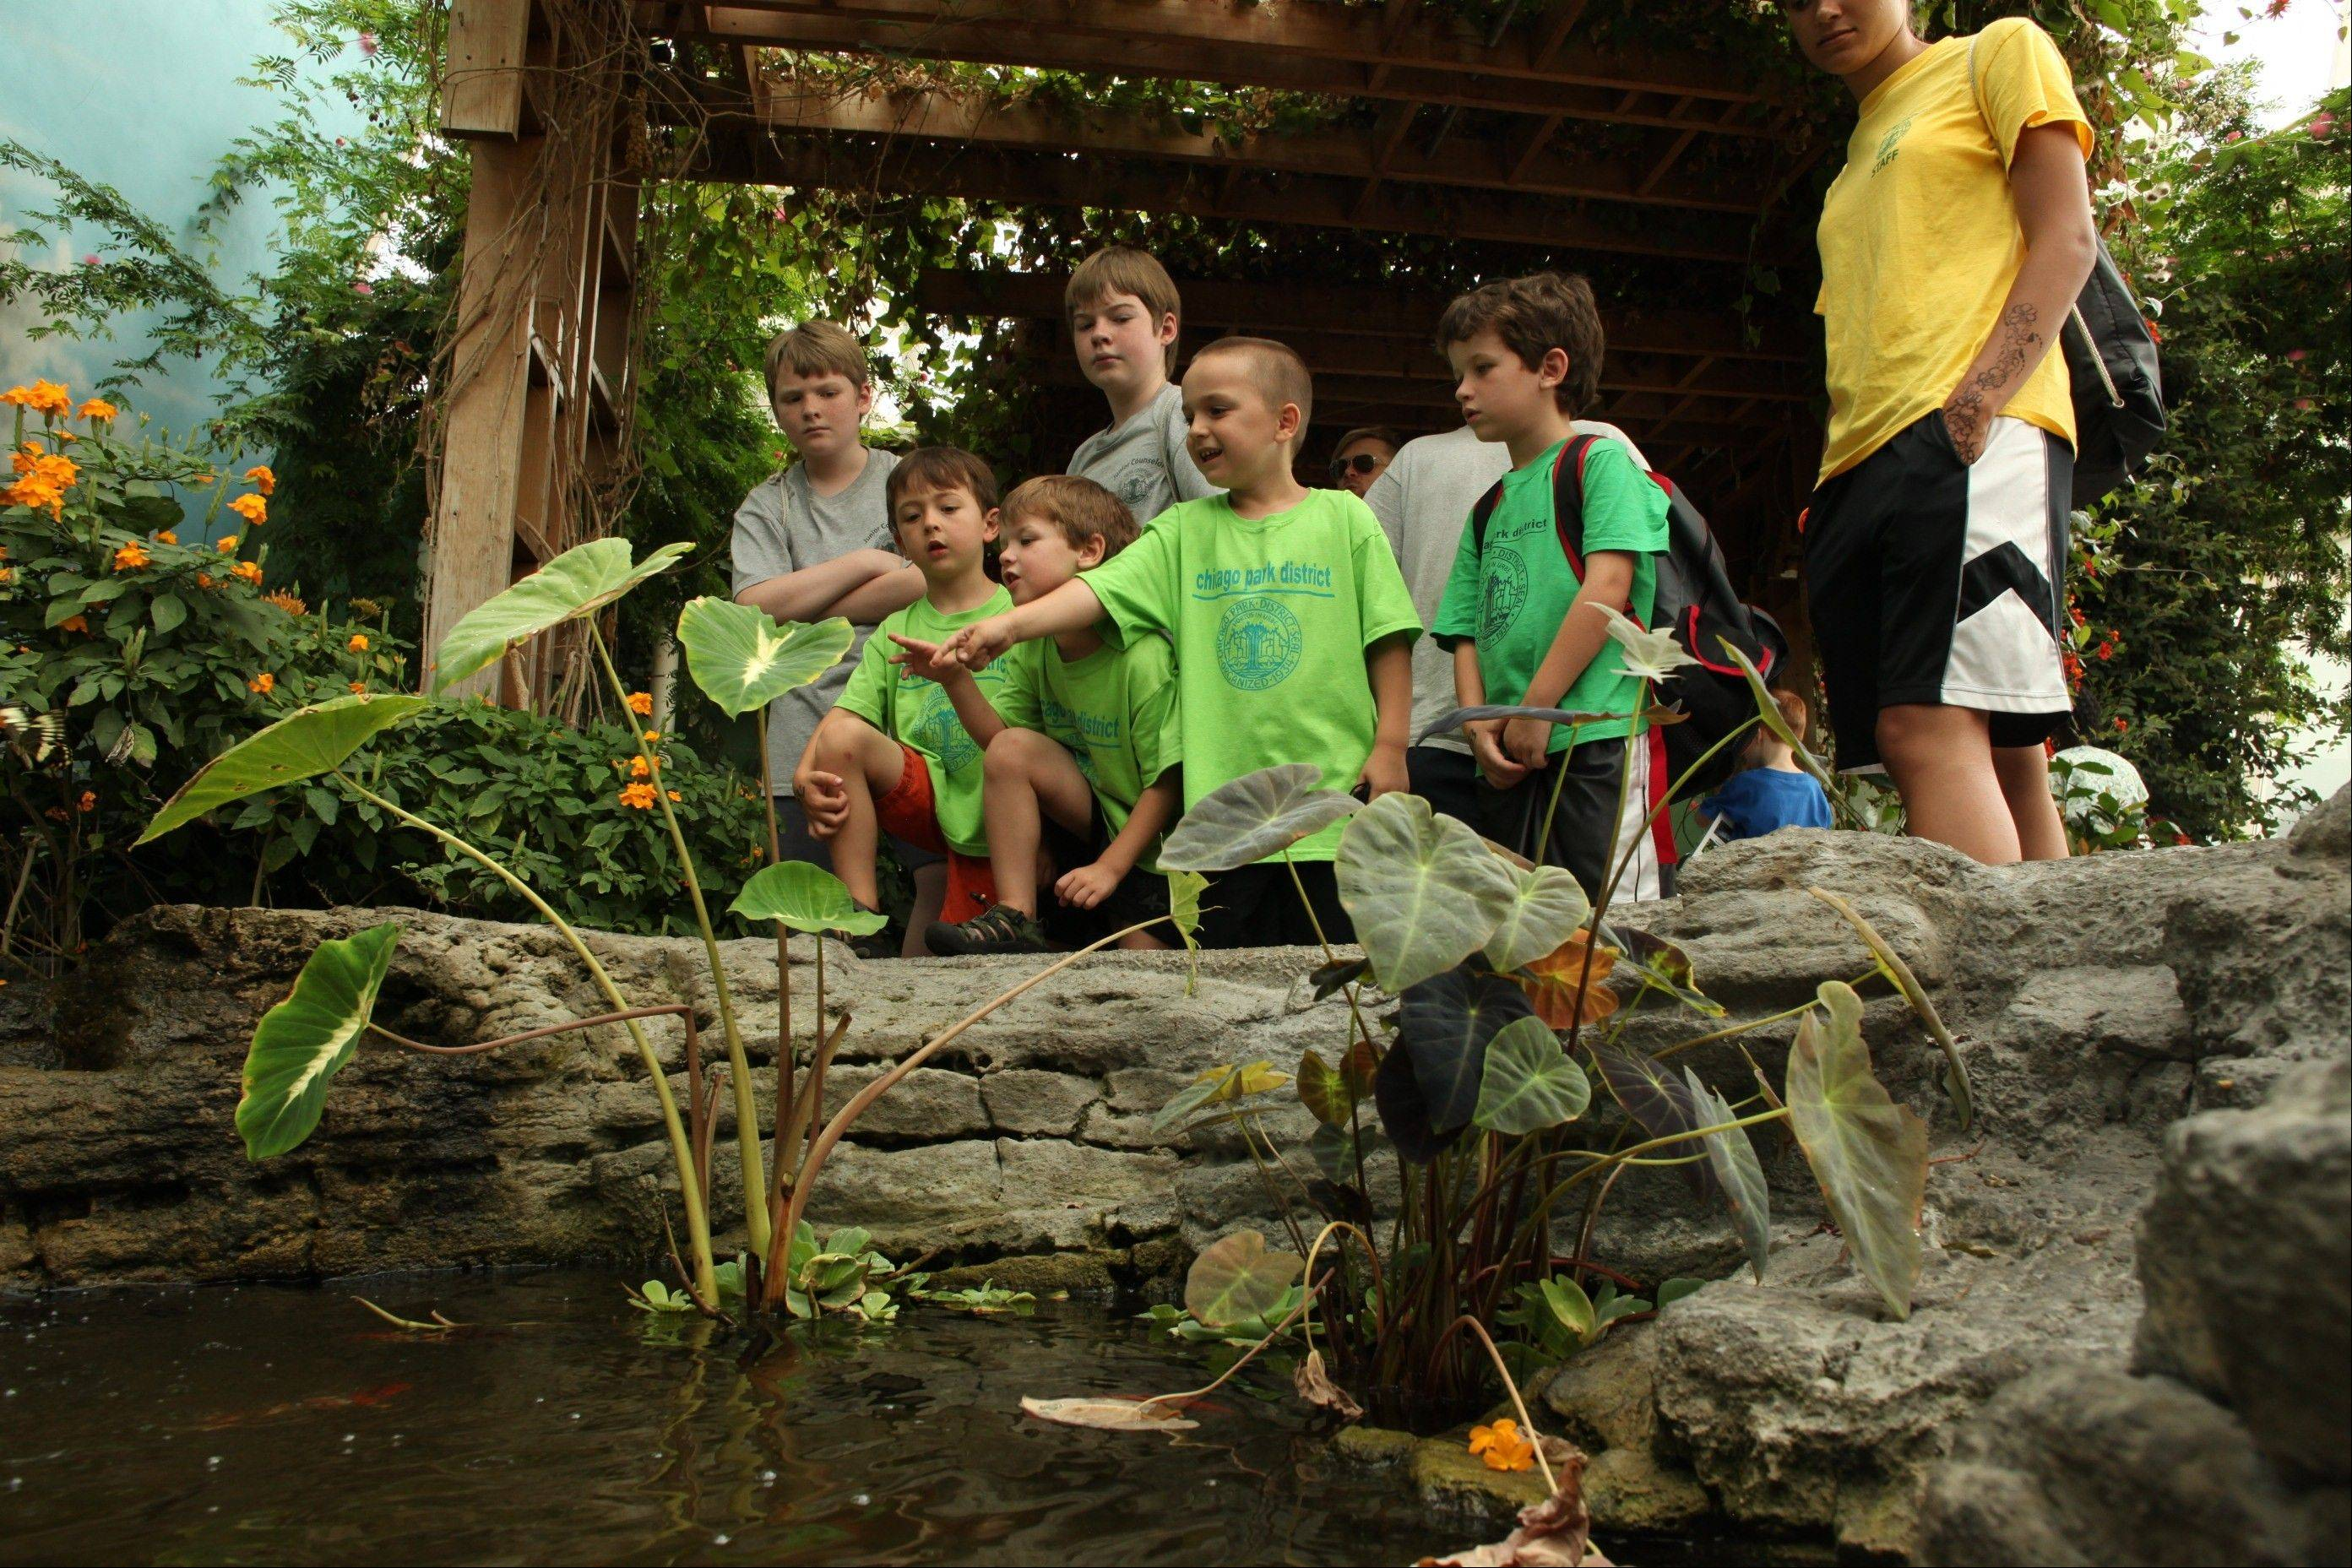 Kids observe what The Peggy Notebaert Nature Museum's Butterfly Haven has to offer. The haven, open year-round, offers visitors an up-close opportunity to view more than 50 species of butterflies from around the world.